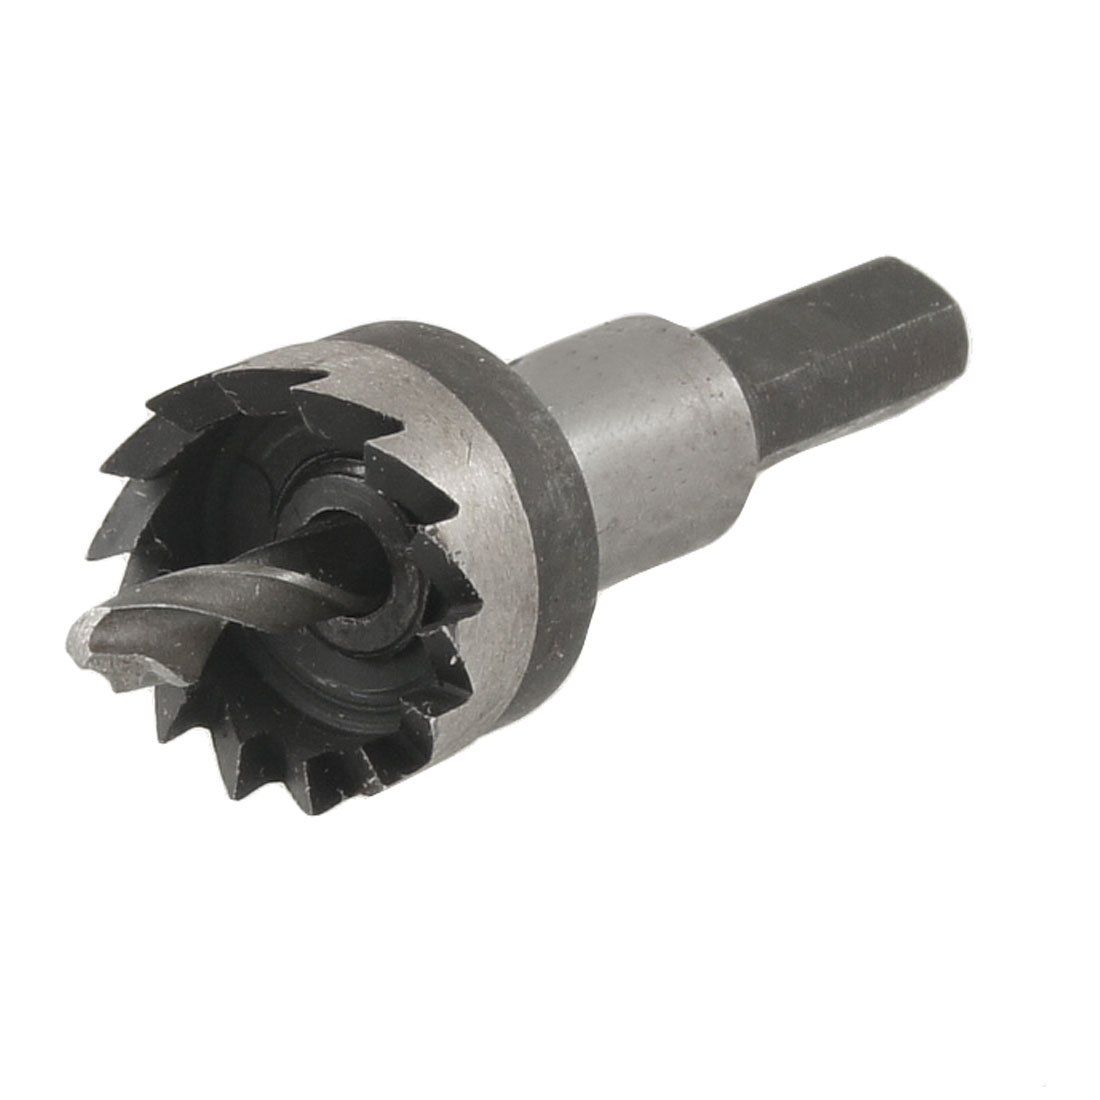 HSS 20.5mm Dia Iron Cutting 5mm Twist Drilling Bit Hole Saw